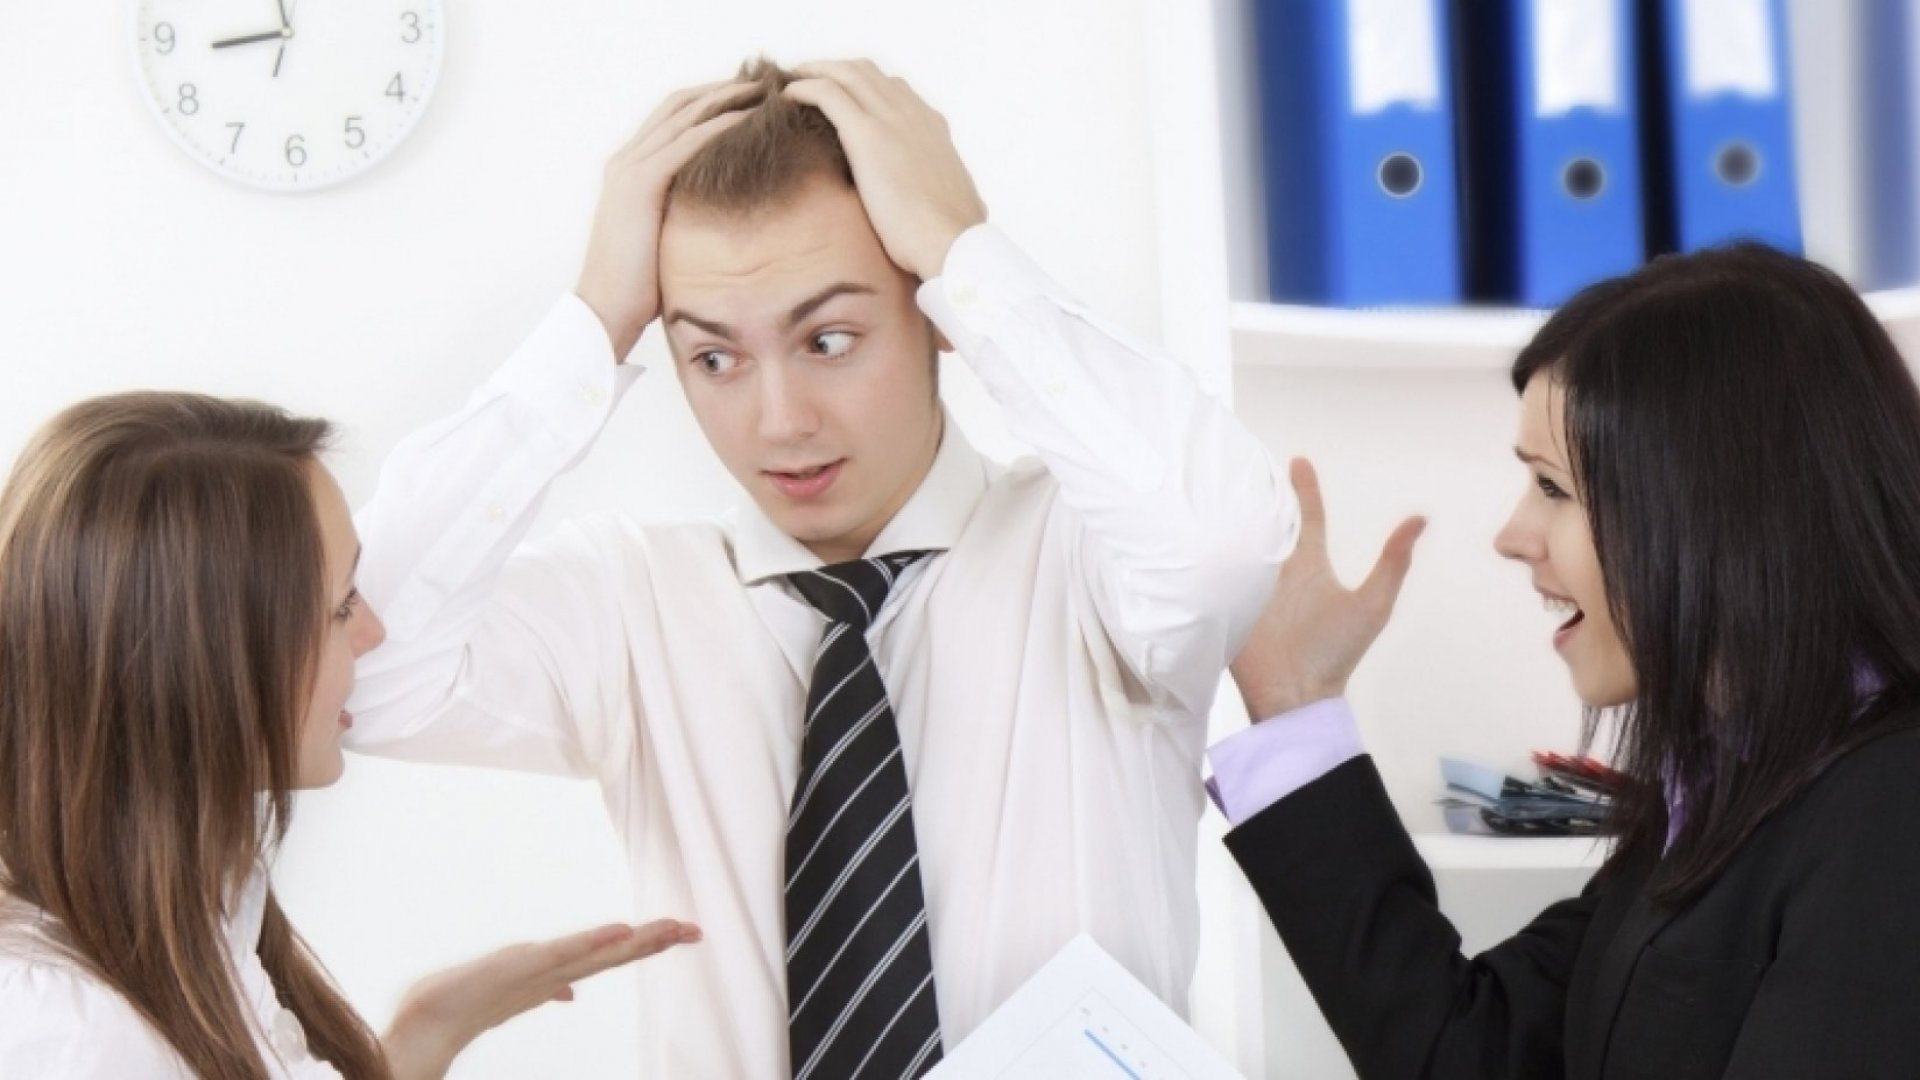 10 Types of Employees That HR Secretly Hates